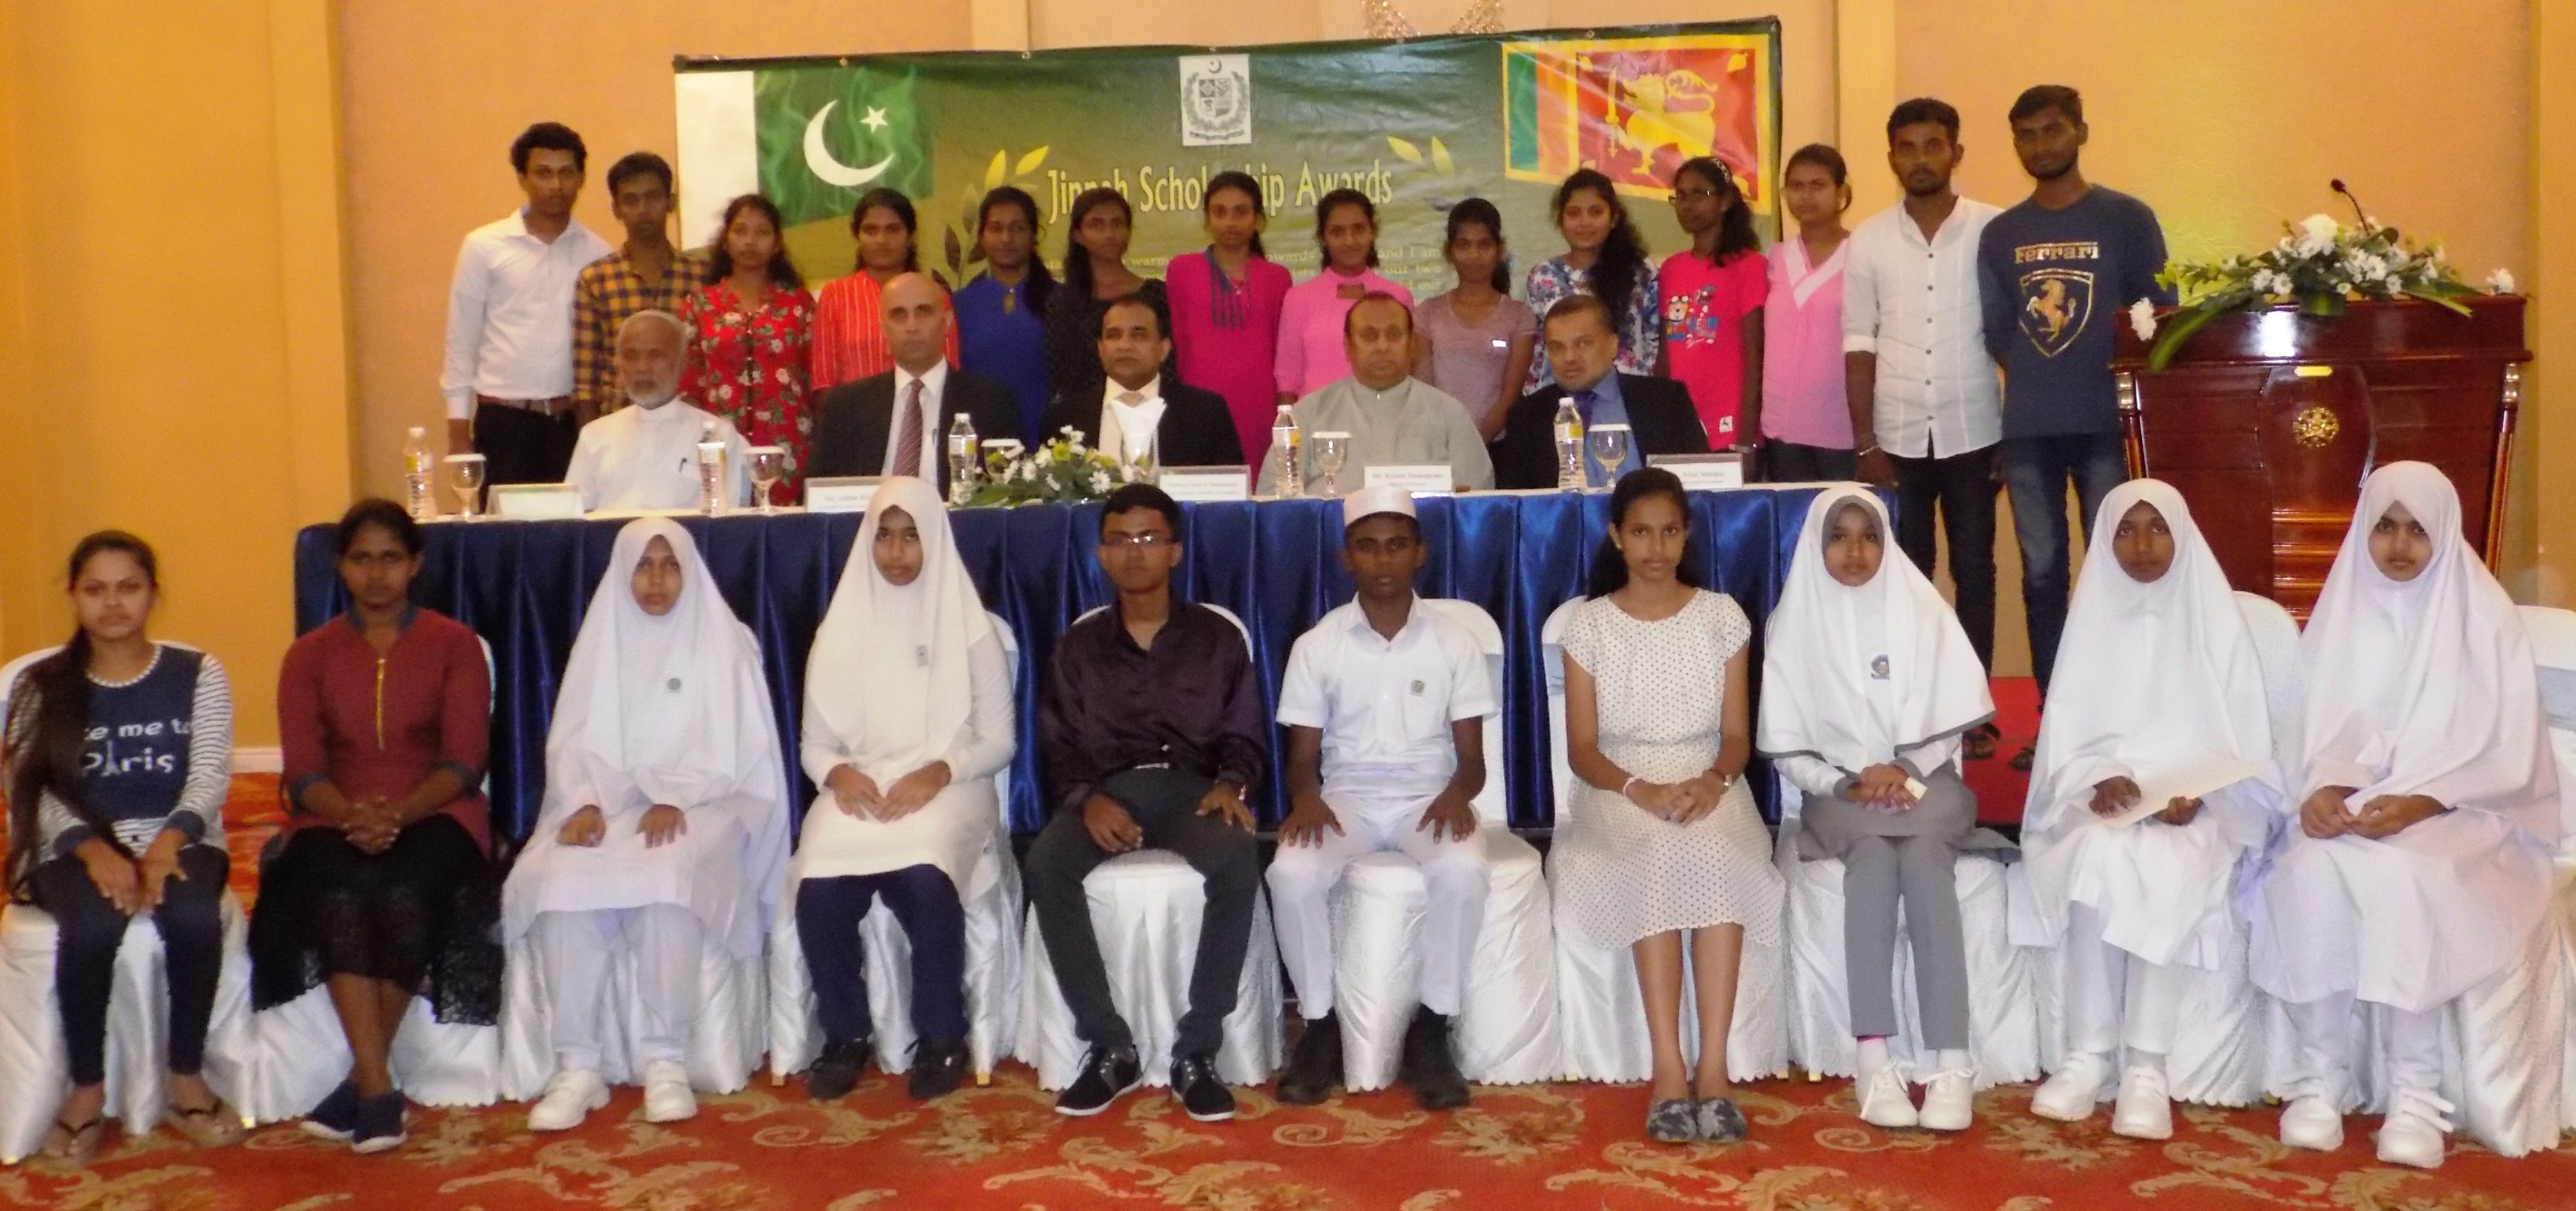 Pakistan reaches out to uplift Sri Lankan youth through scholarships